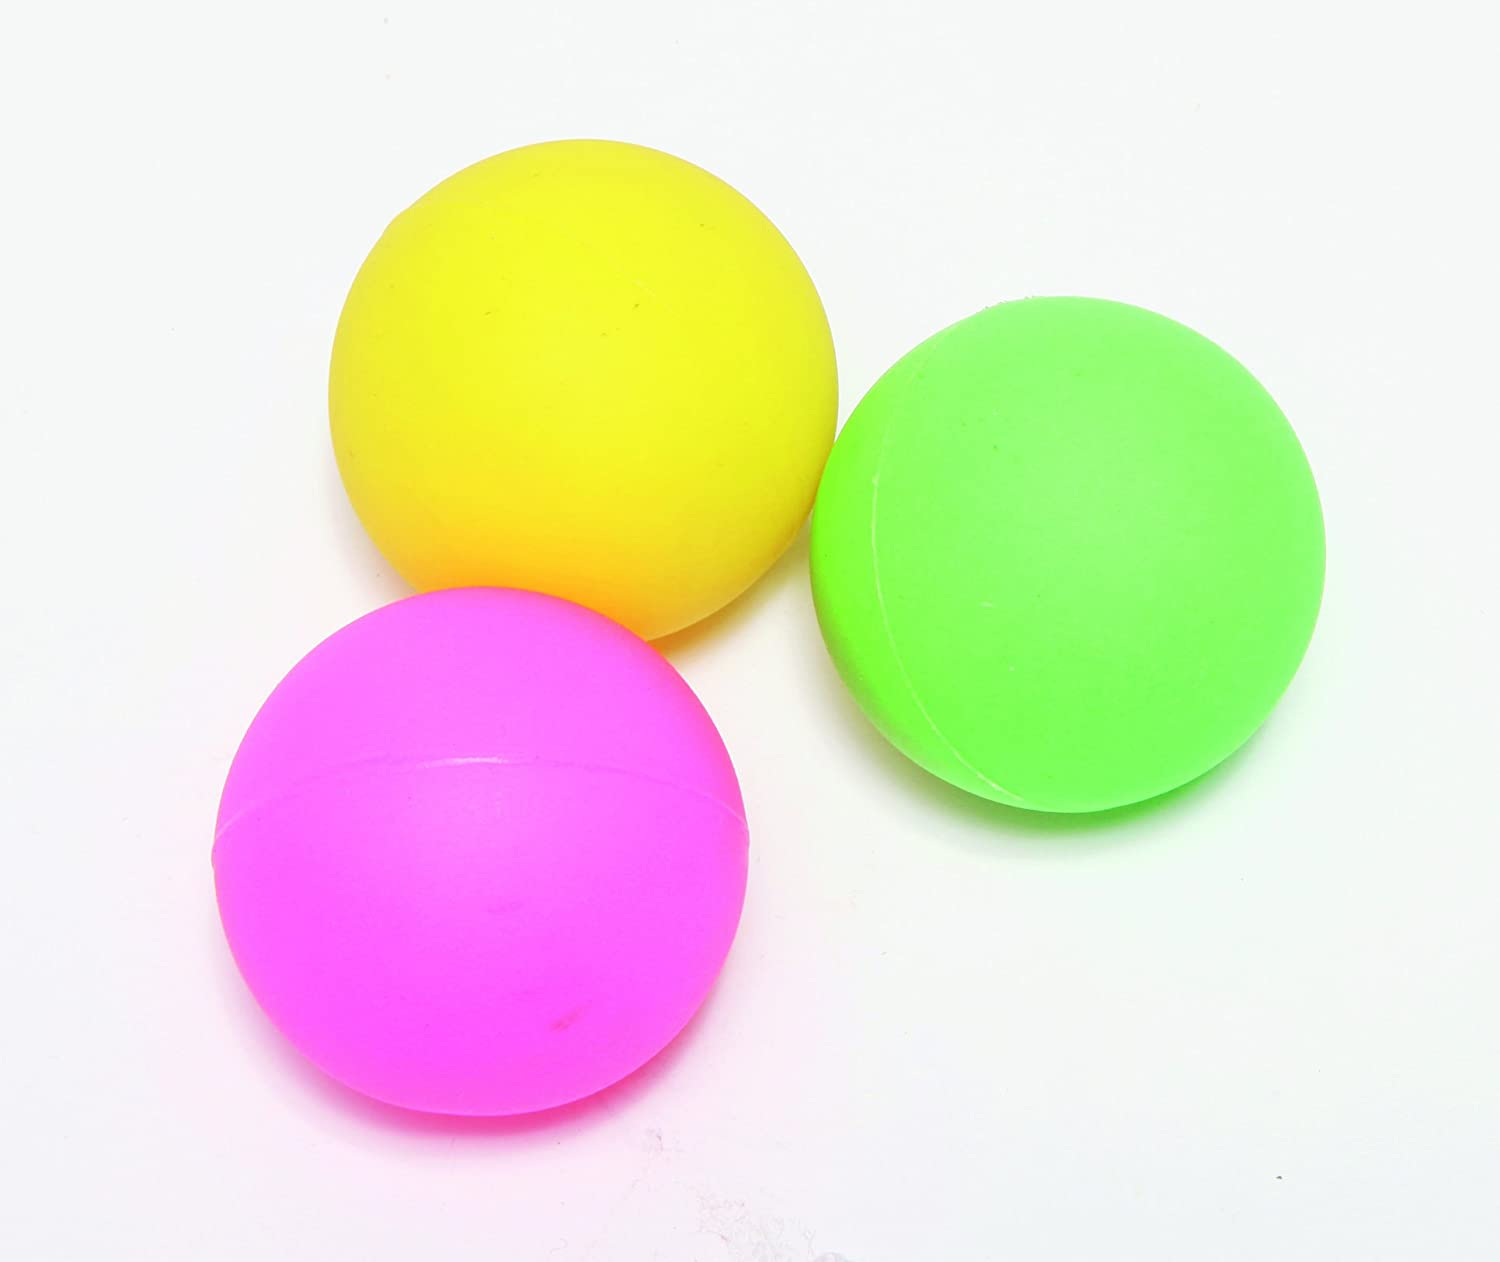 EasykadoEasykado - Filet de 3 balles de Beach Ball A05617